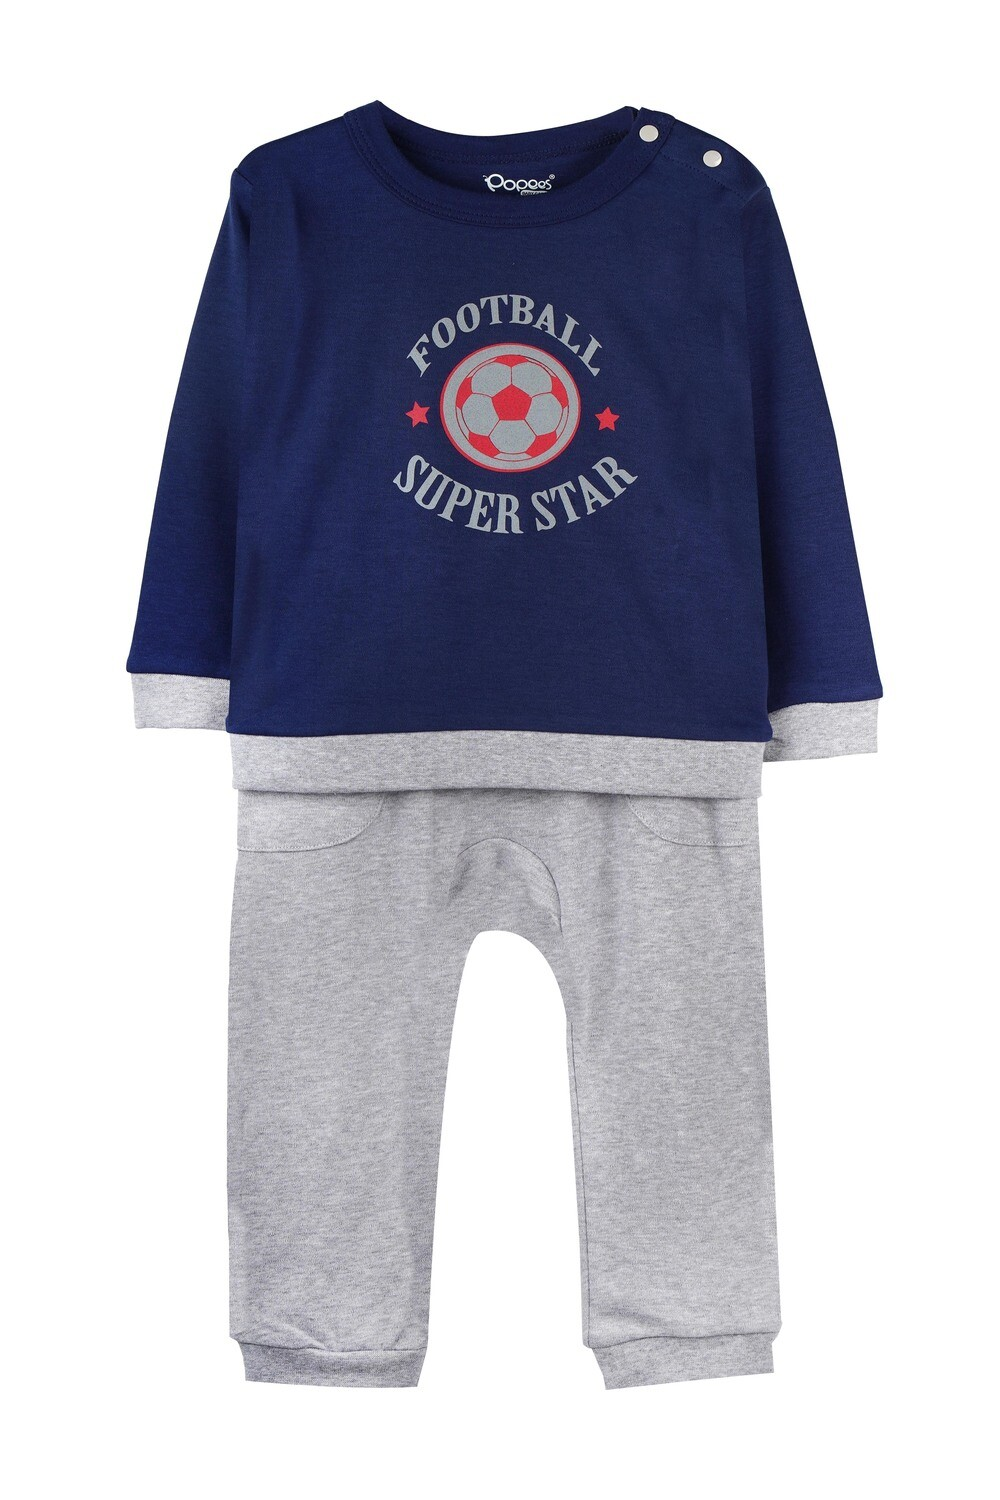 KIRTON NAVY BLUE Full Sleeve Shoulder Open Top and Pant for Baby Boys